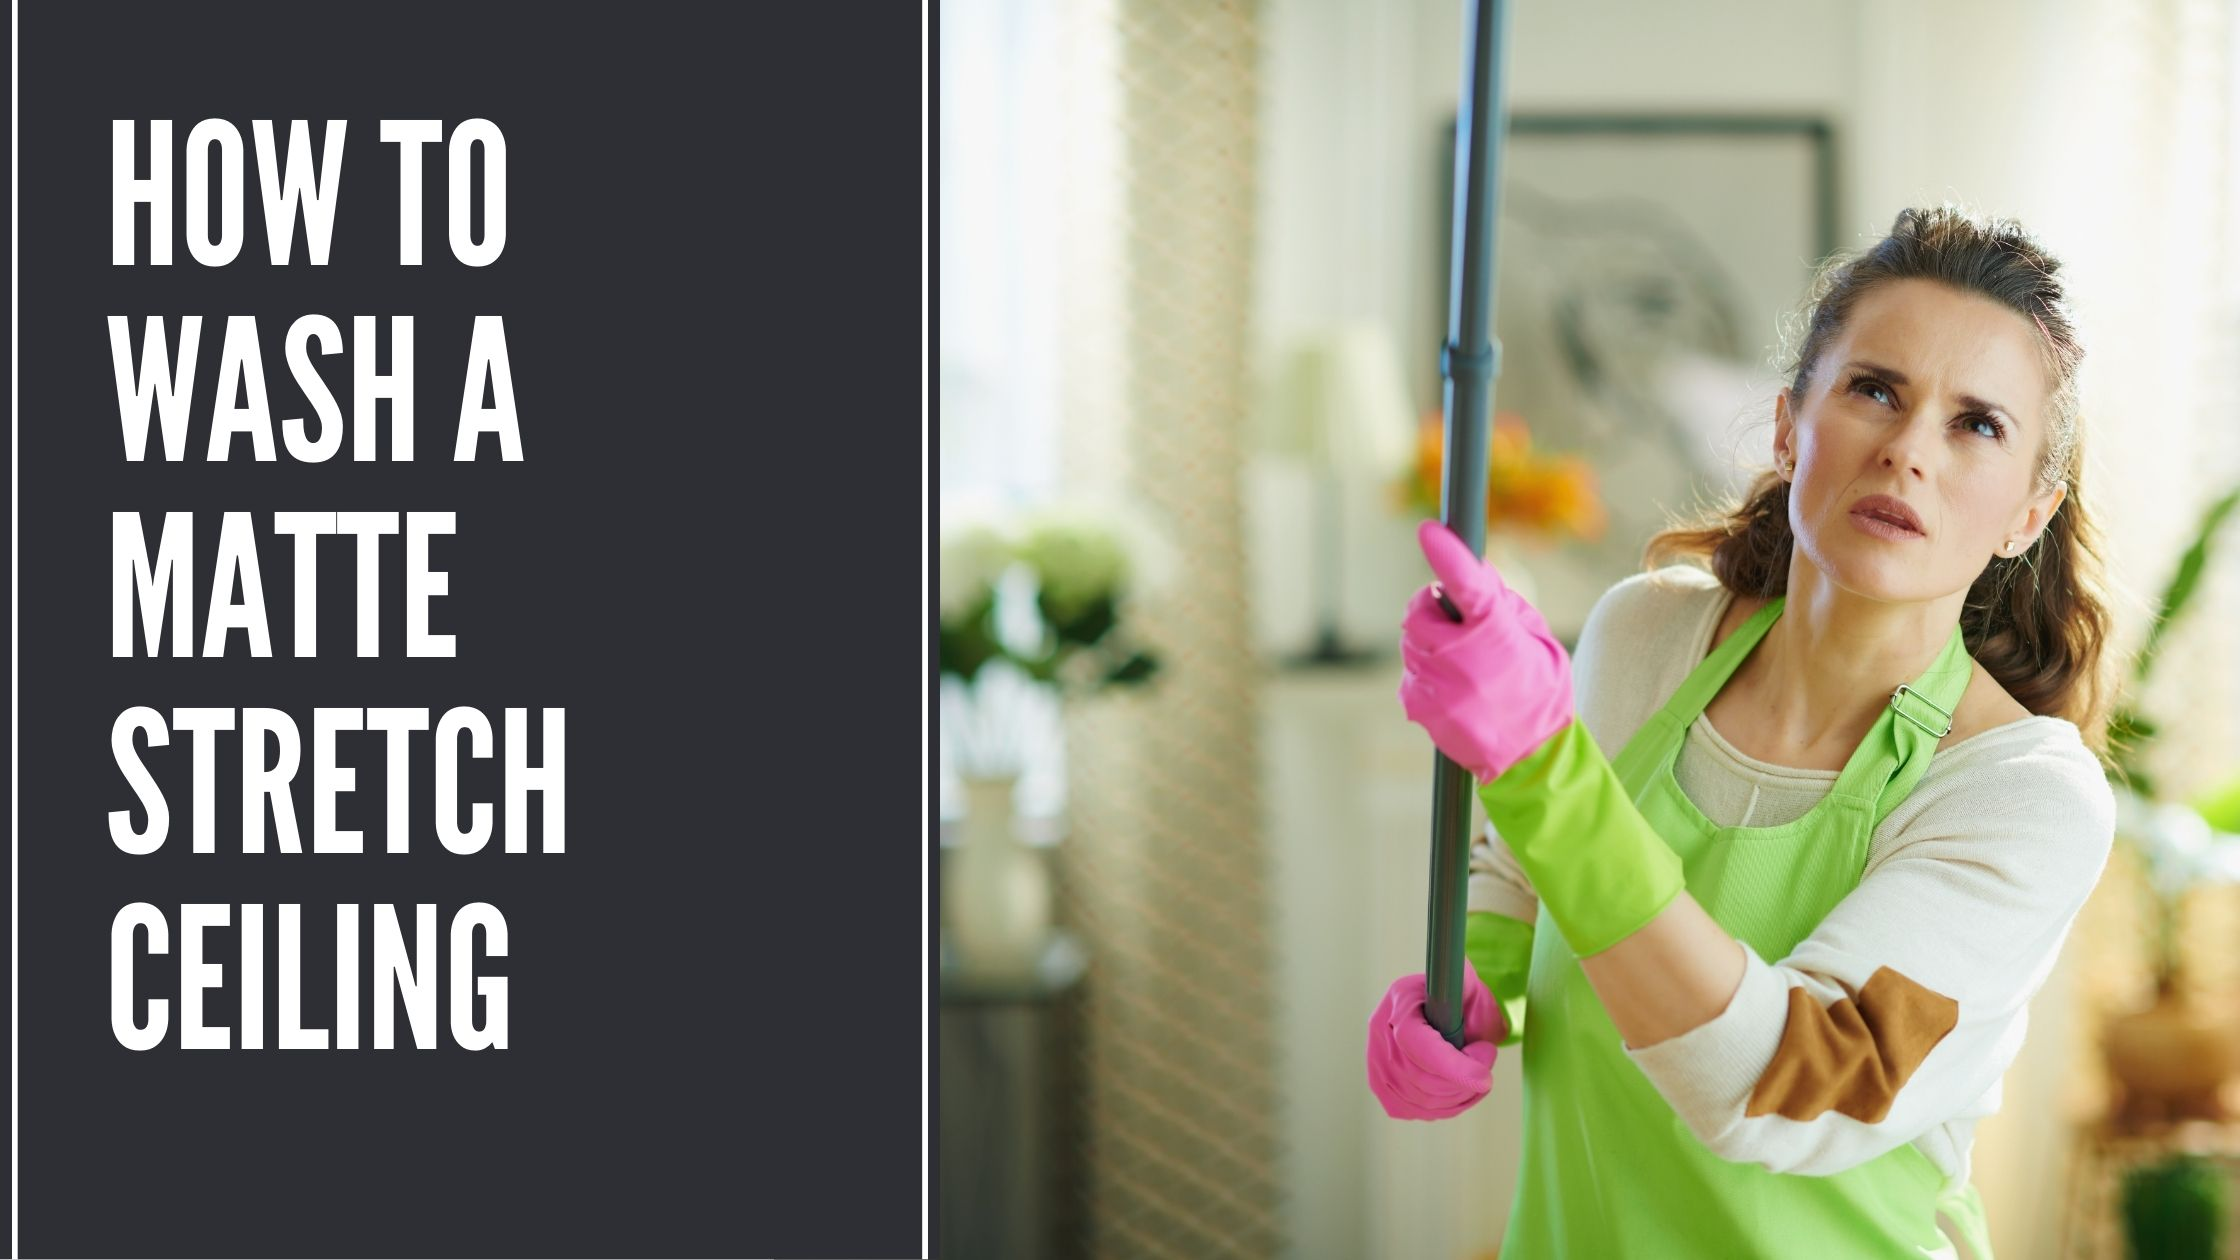 How to wash a matte stretch ceiling without streaks